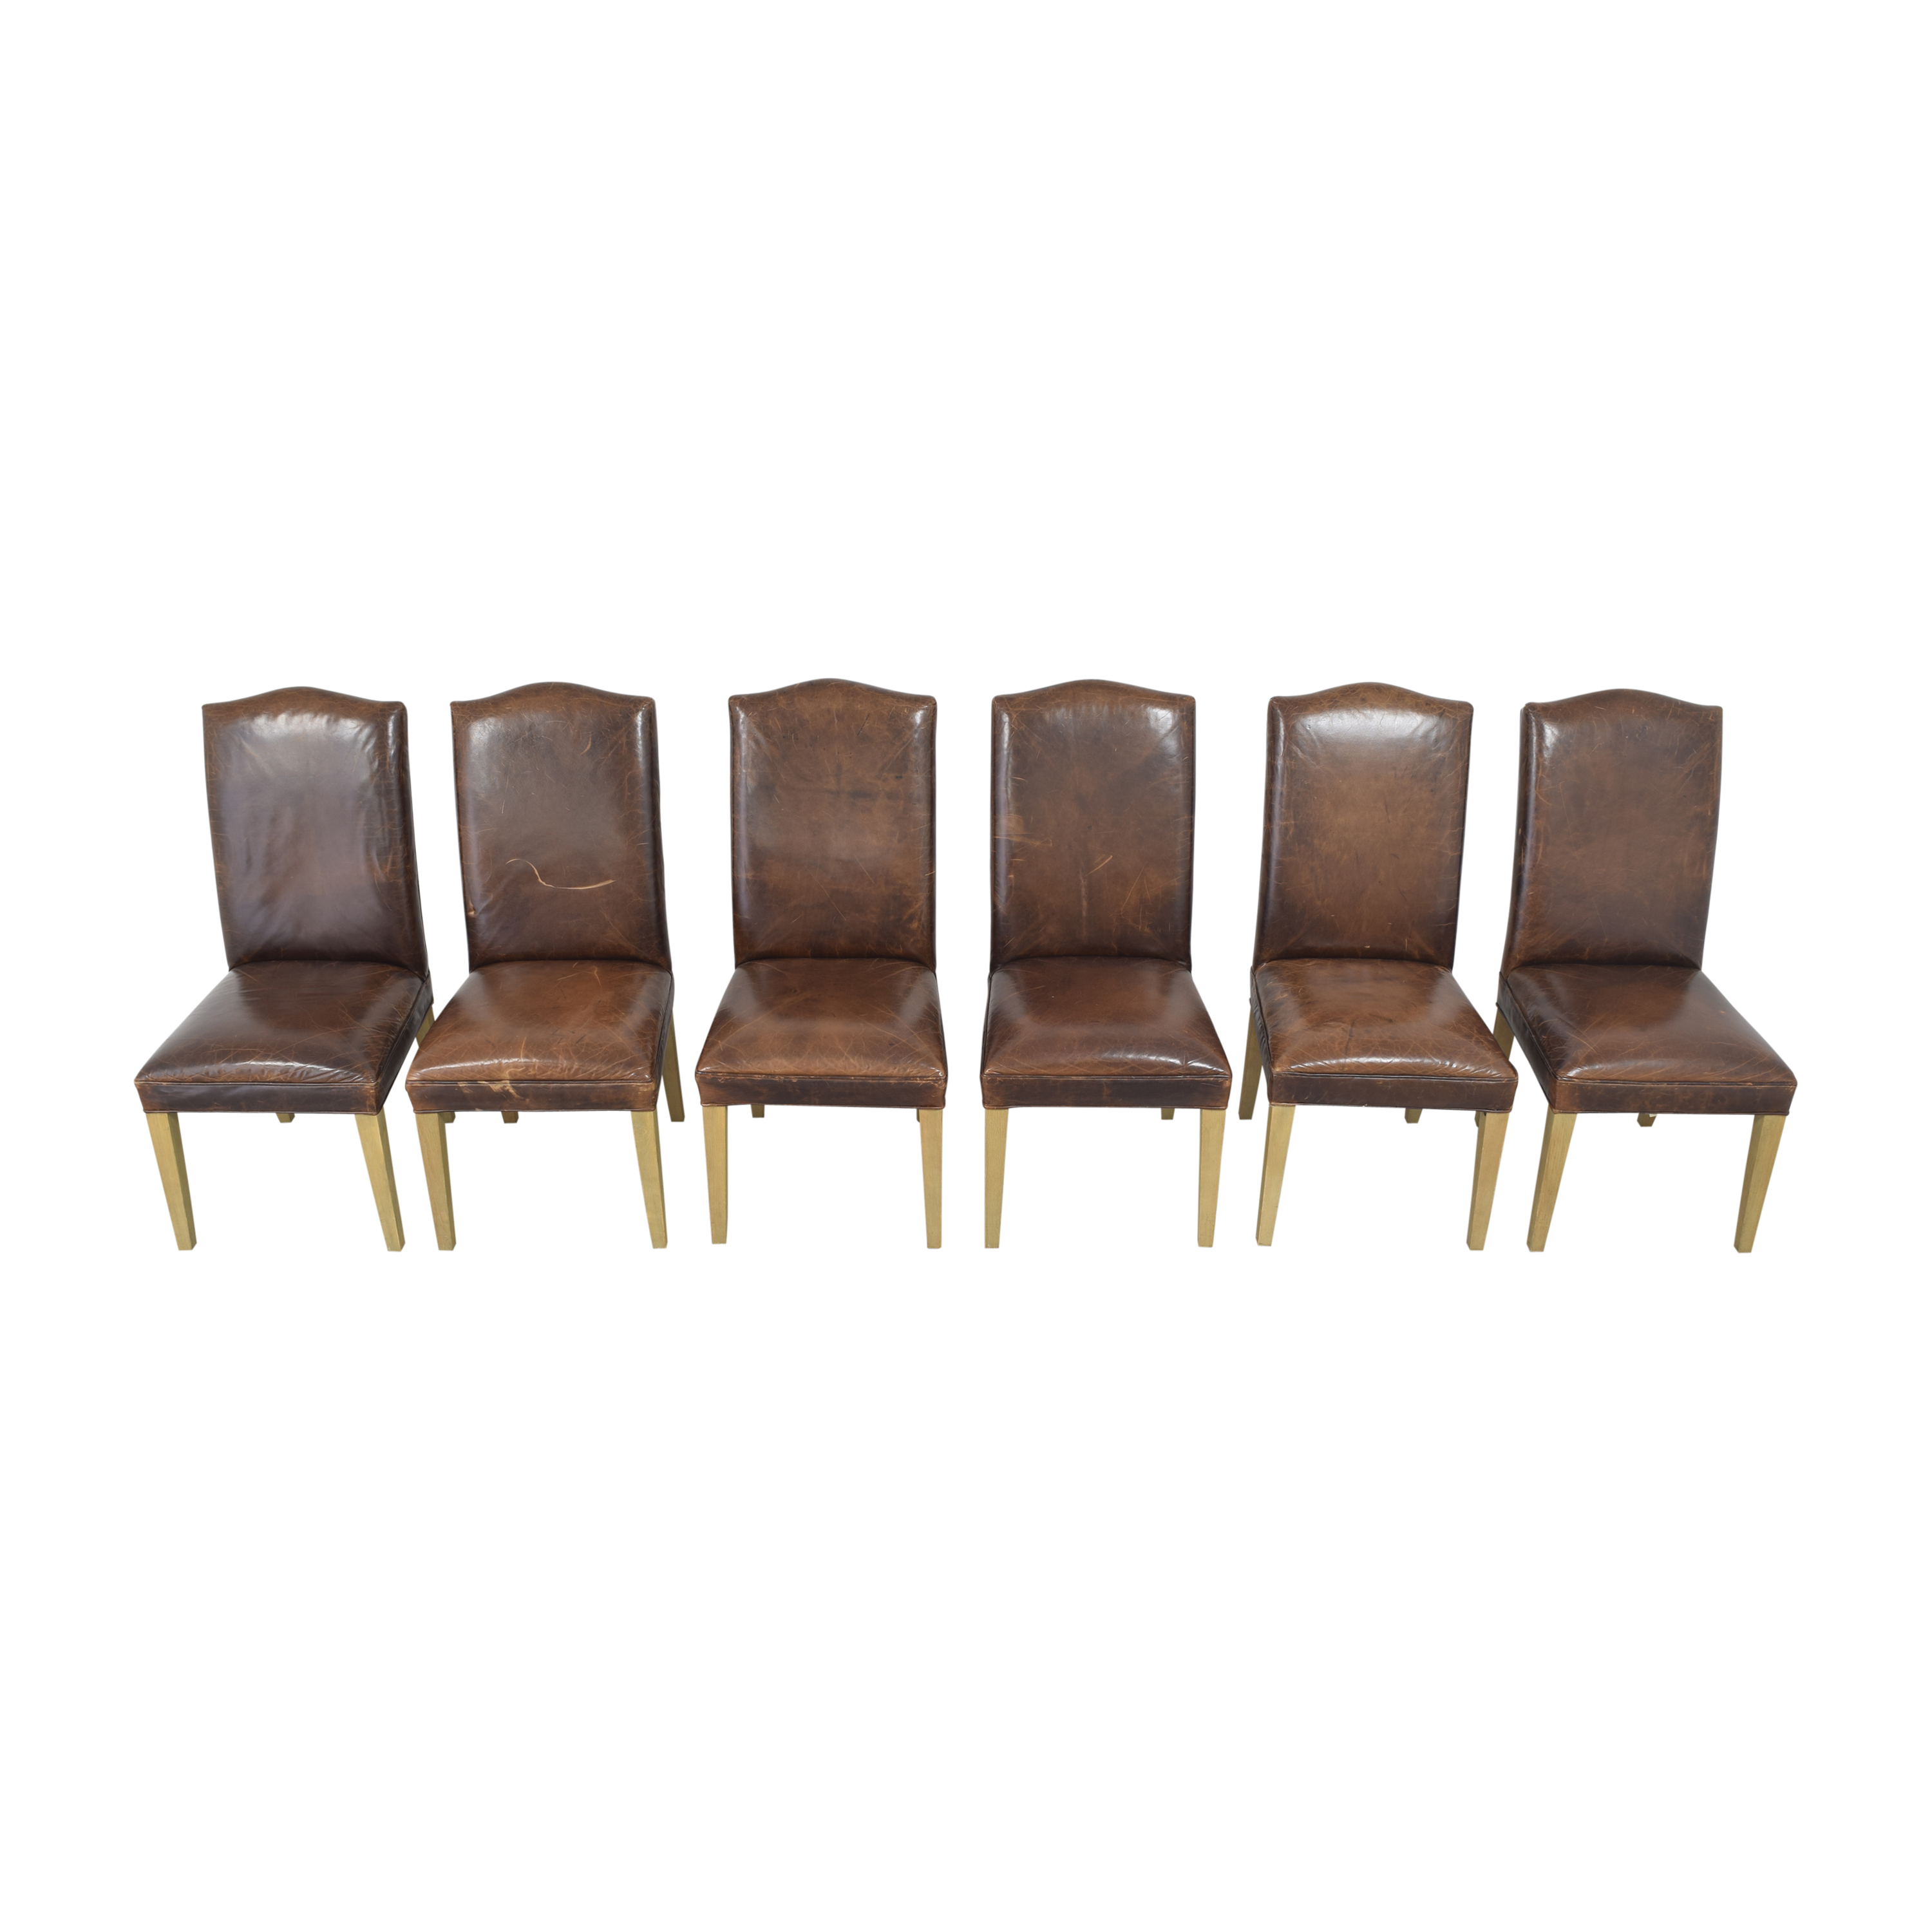 Restoration Hardware Restoration Hardware Hudson Camelback Side Chairs on sale